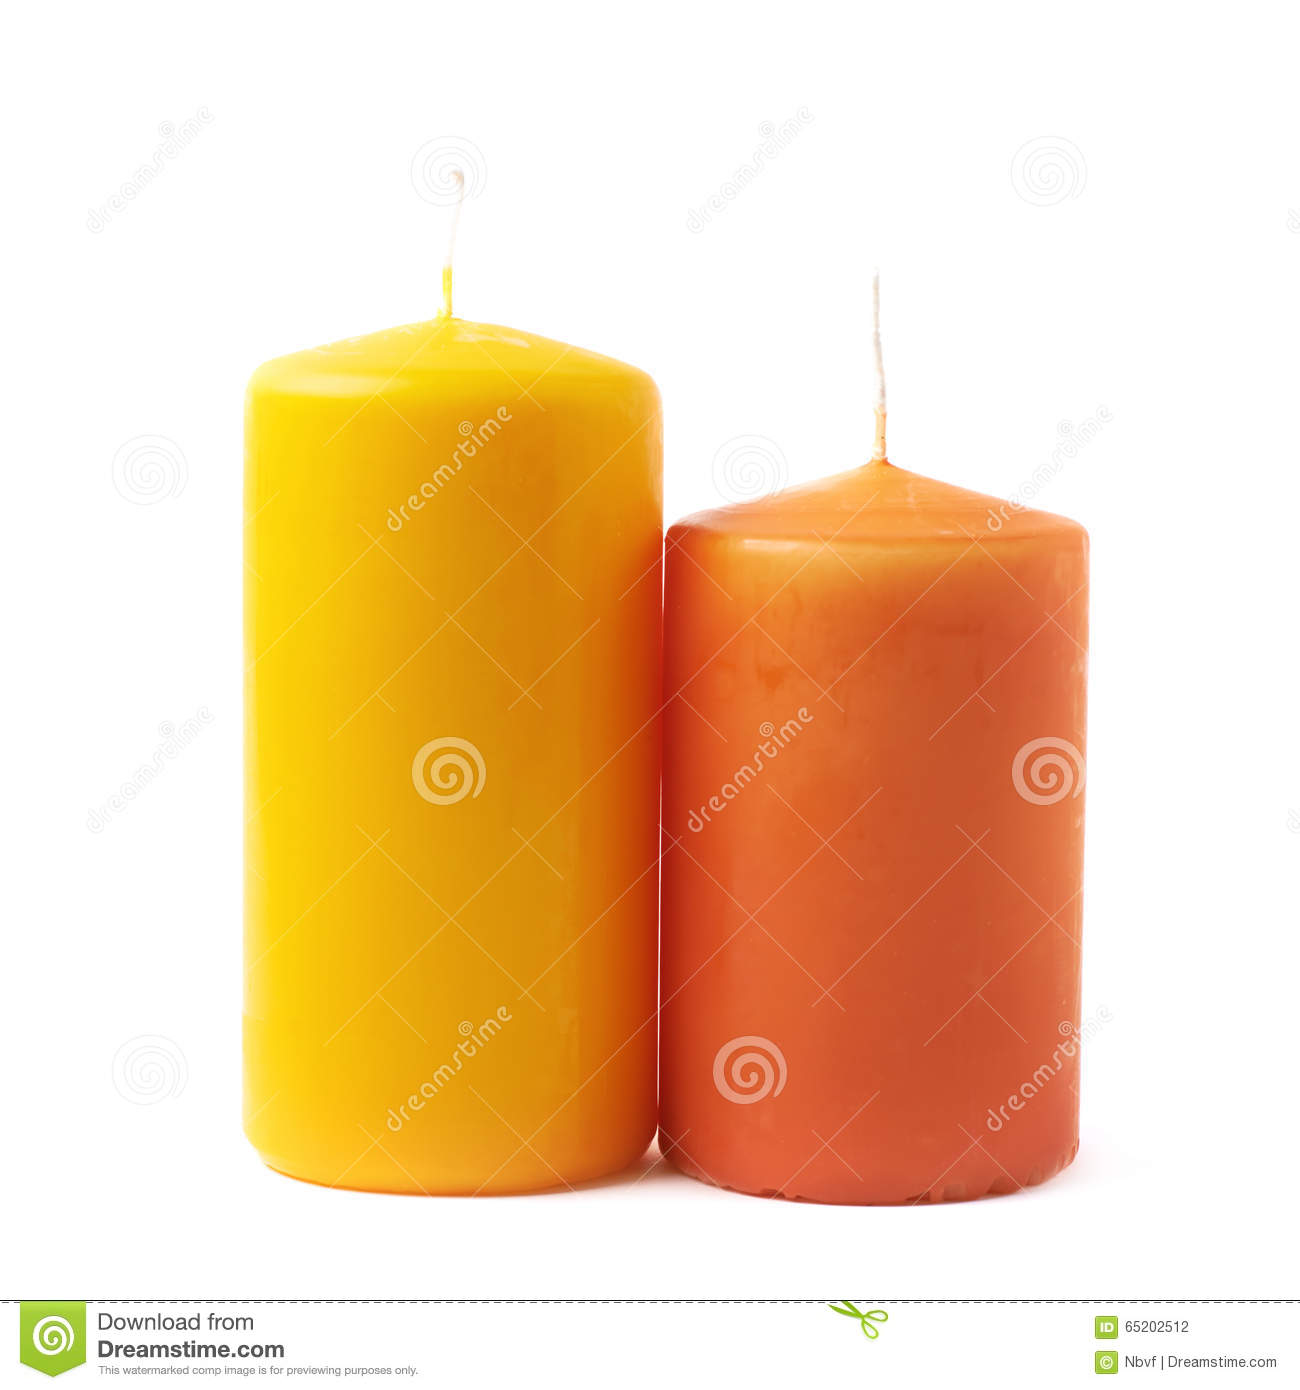 Bougies Jaunes Bougies Jaunes Et Oranges D Isolement Photo Stock Image Du